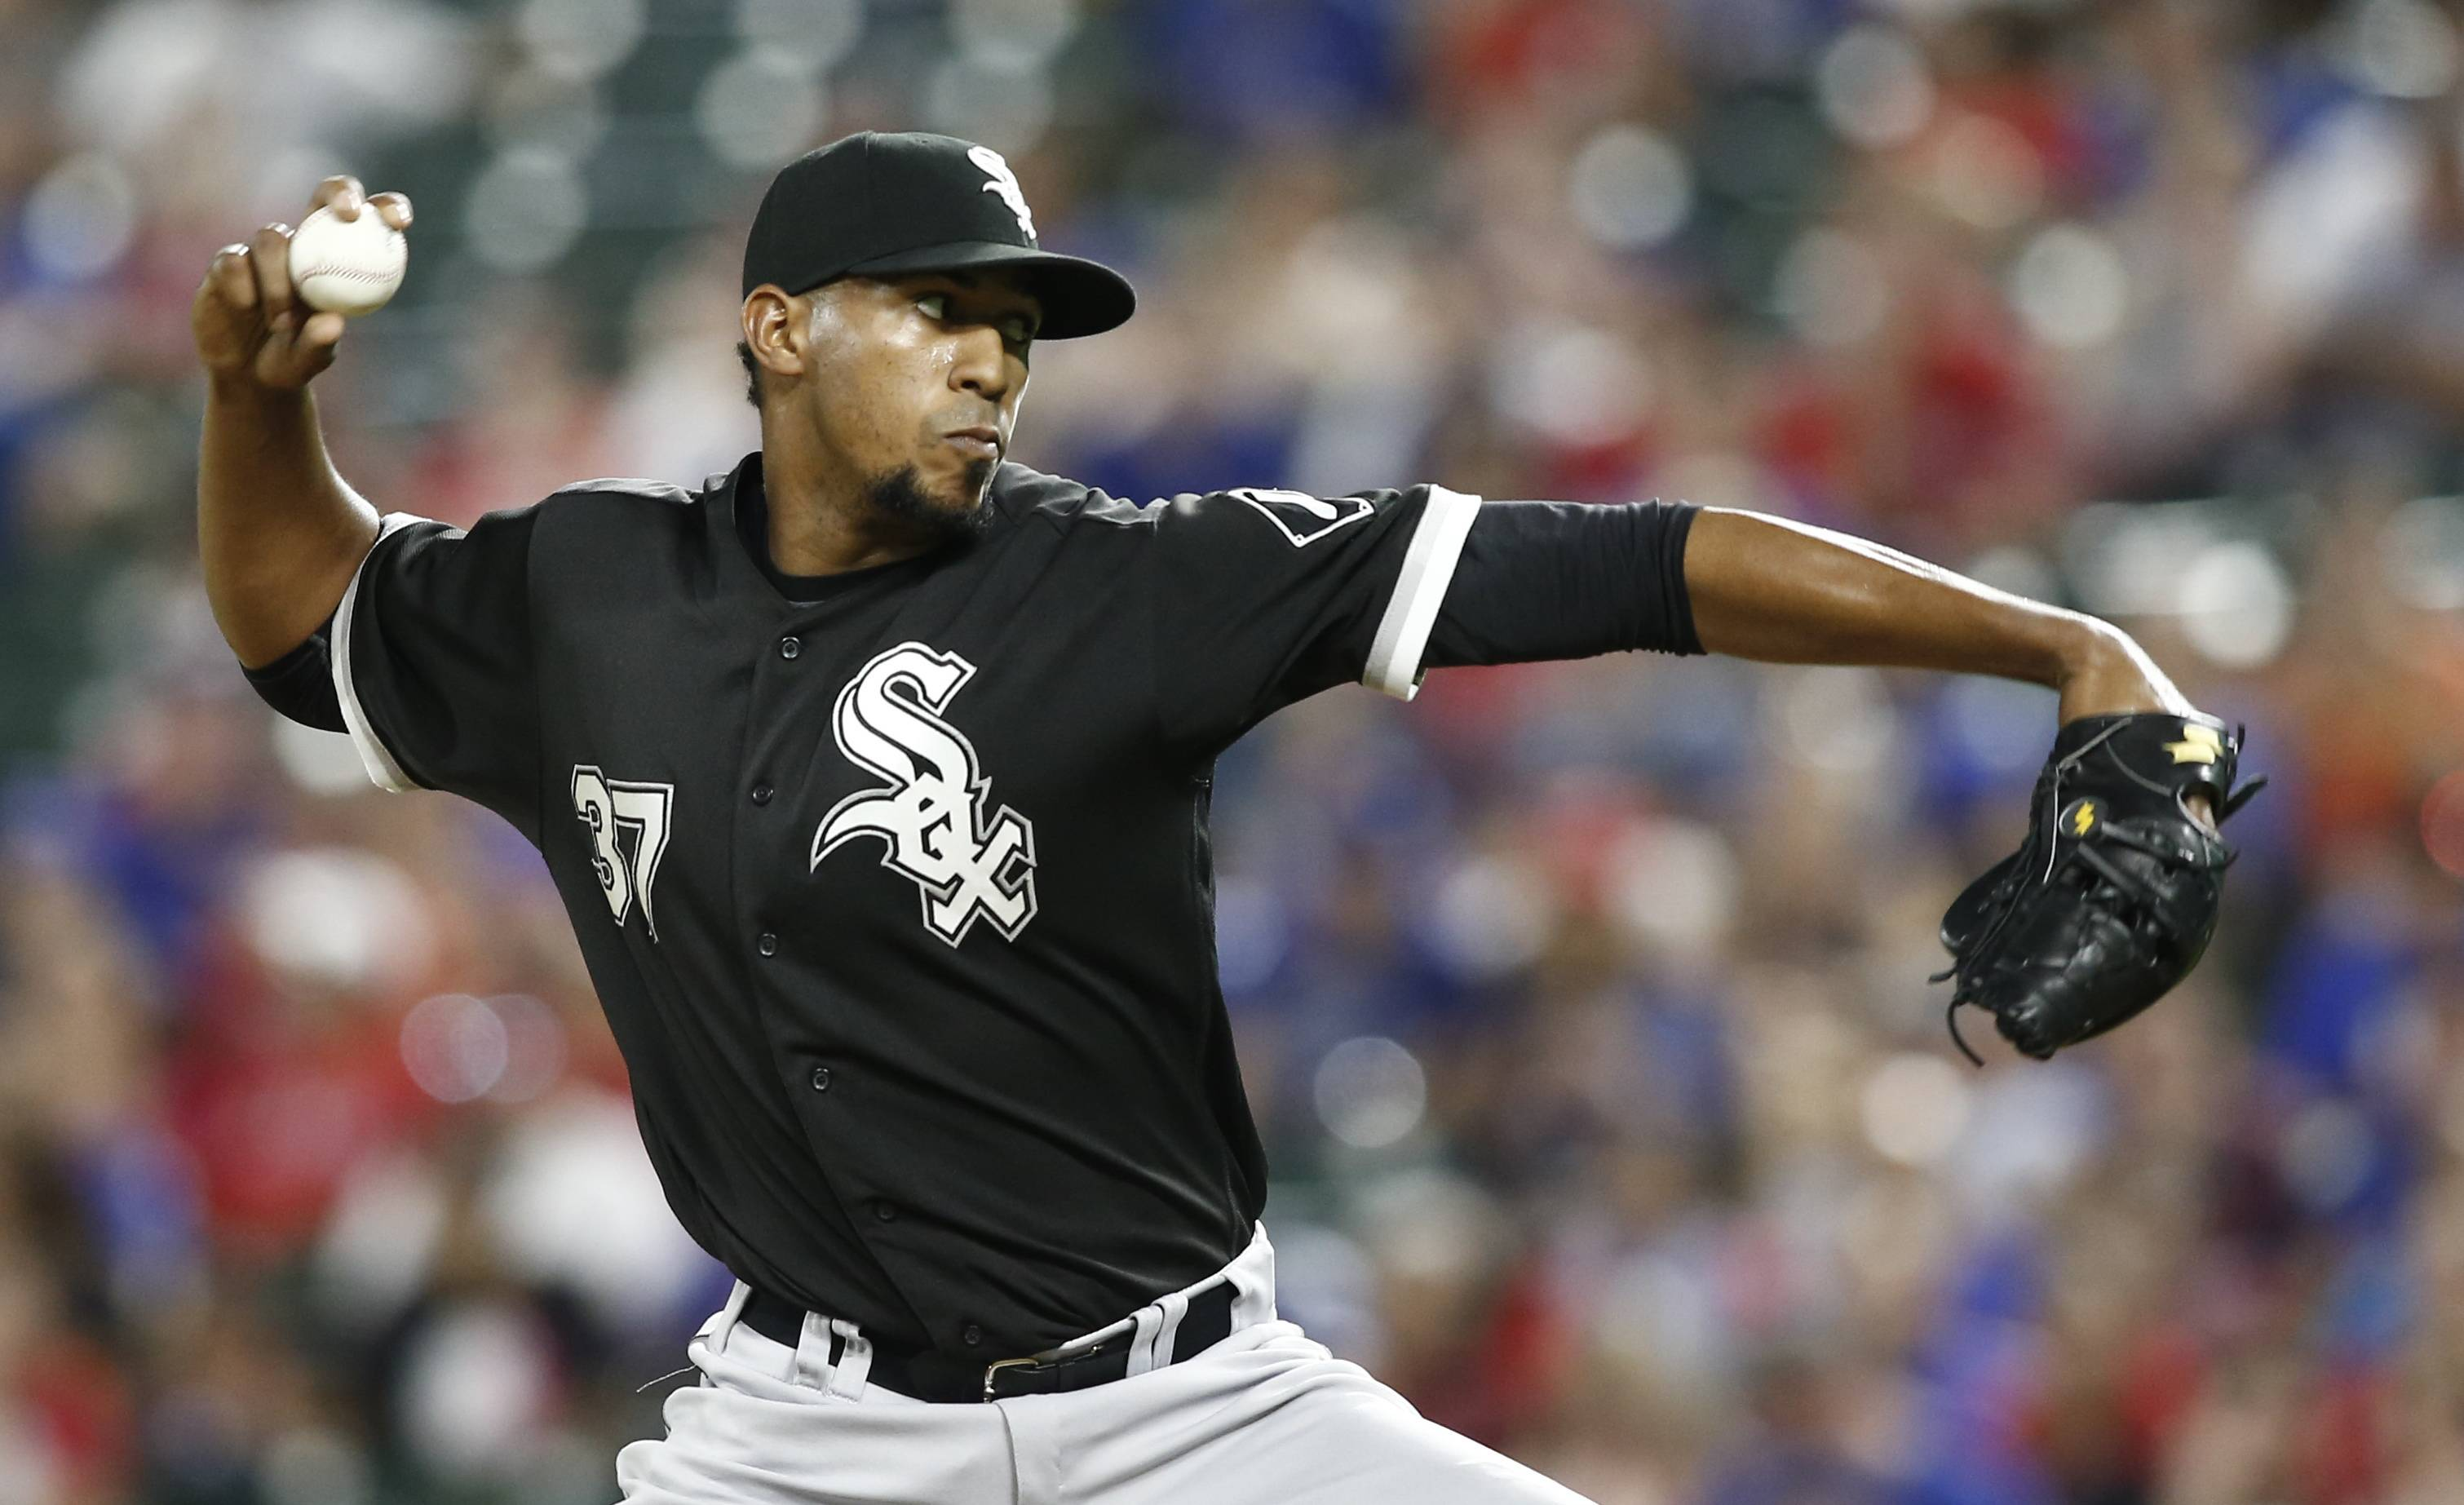 Juan Minaya was bouncing back and forth between the Chicago White Sox and Class AAA Charlotte during the first half of the season. After Sox general manager Rick Hahn traded away most of the bullpen in July and early August, Minaya has done a good job as closer.